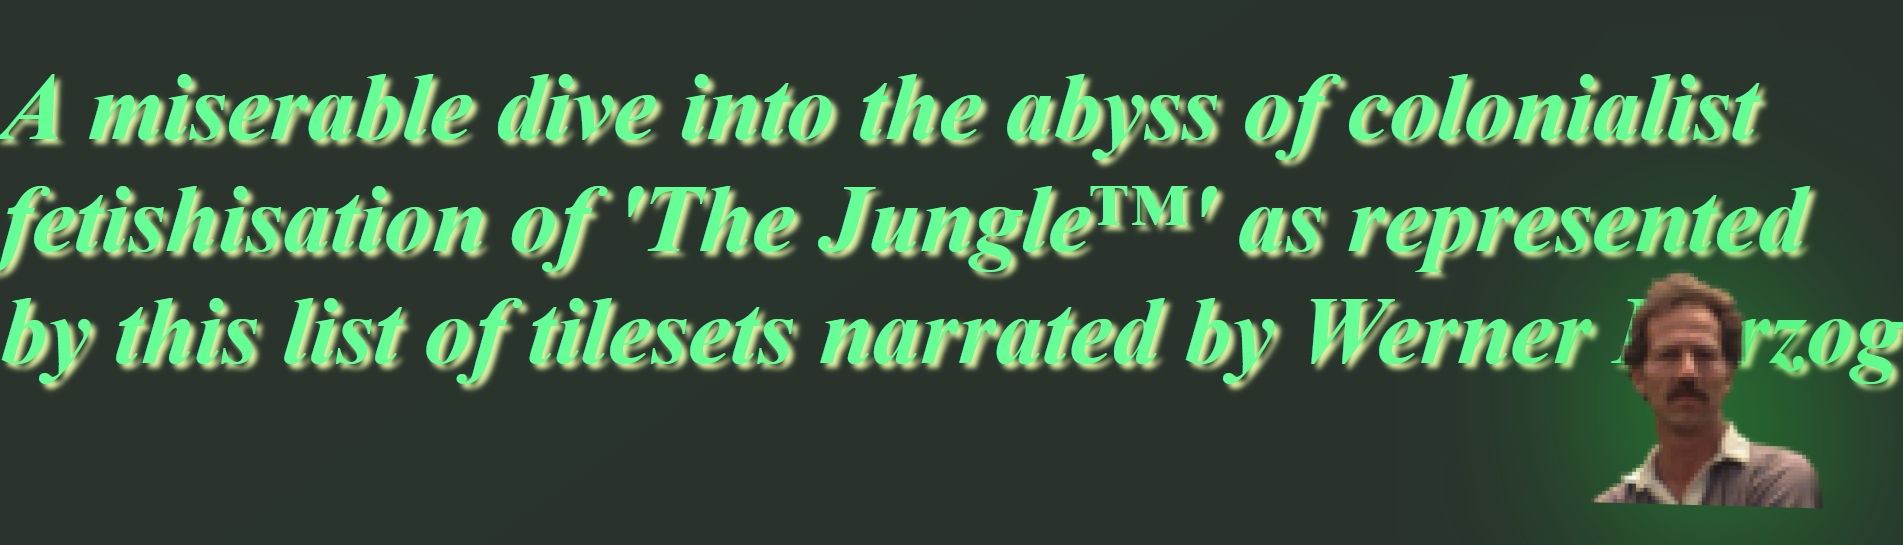 Cursed List of Jungle Tilesets as Narrated by Werner Herzog